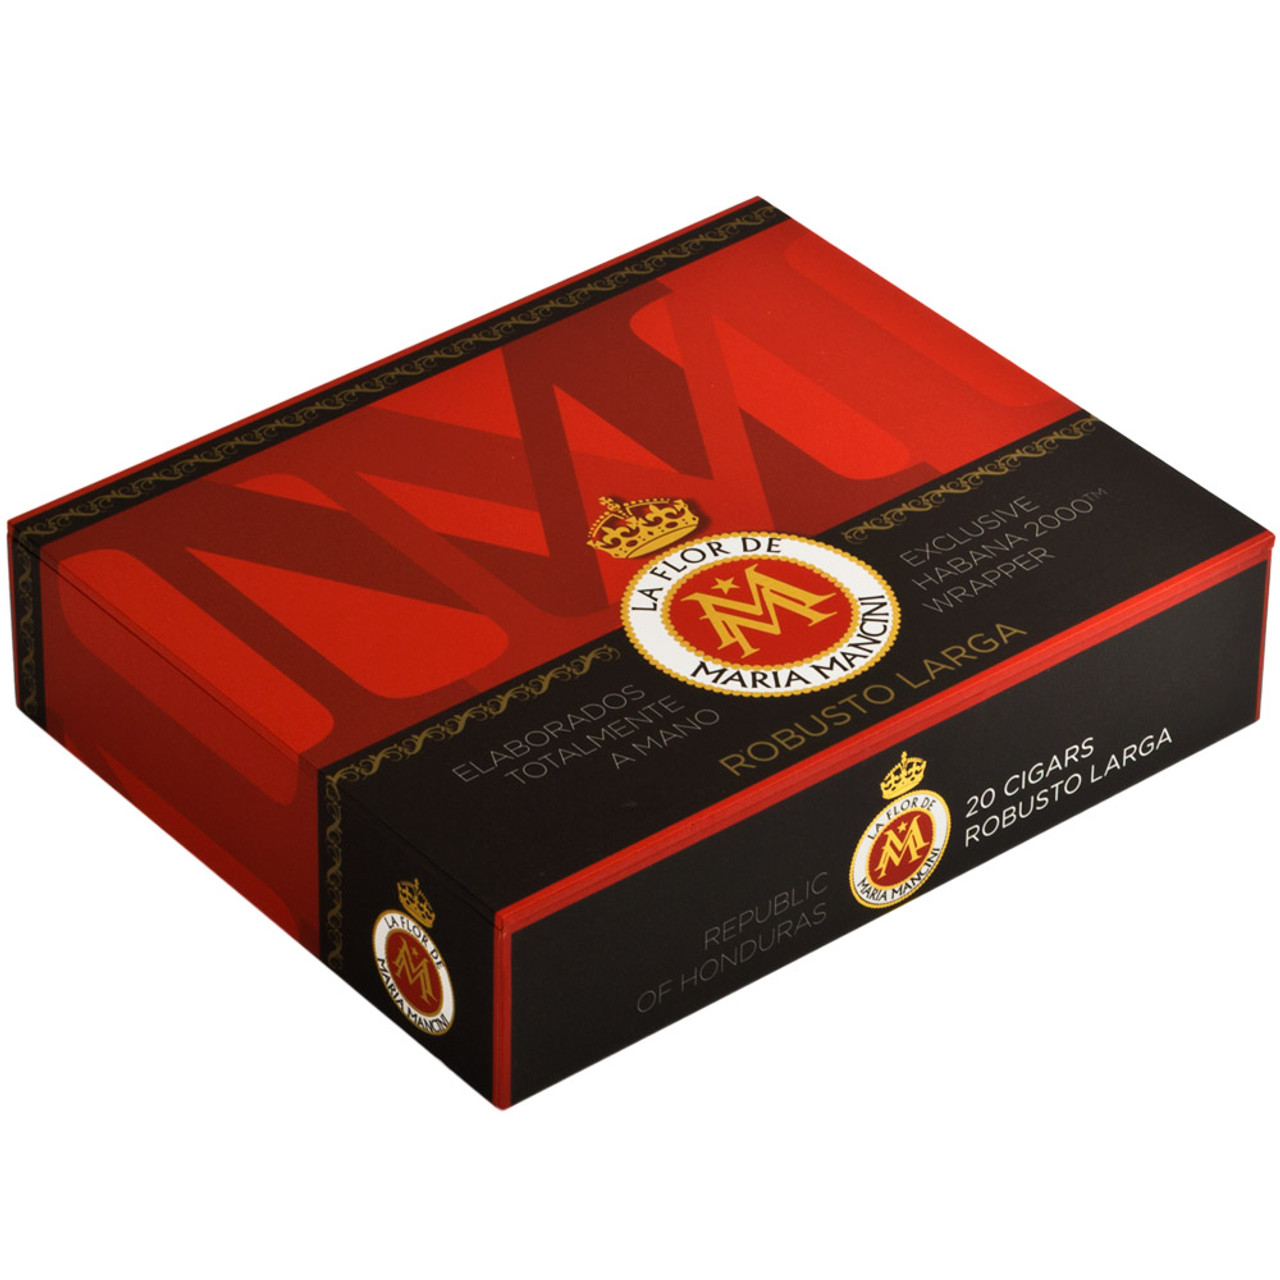 Maria Mancini Red Clemenceau Cigars - 7 x 50 (Box of 20)